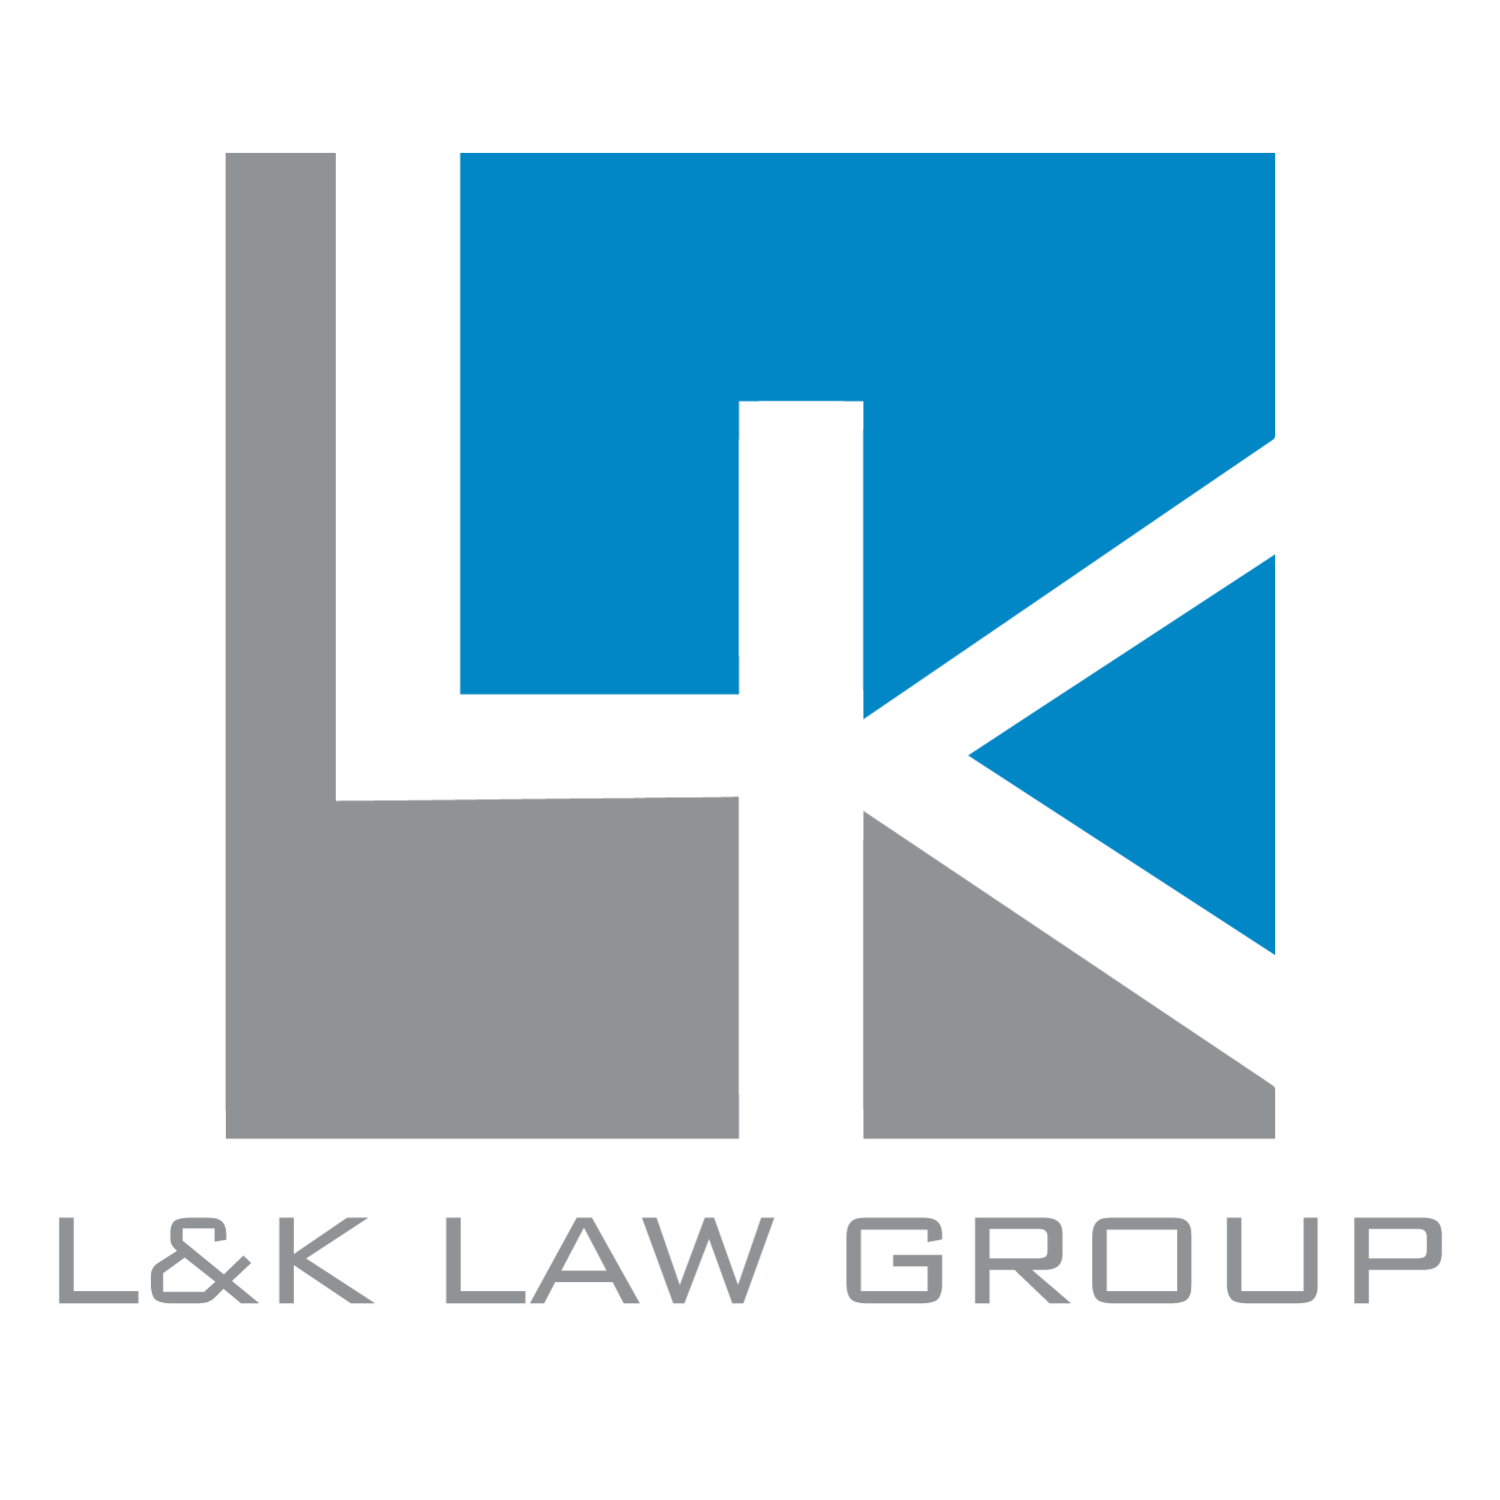 L&K Law Group